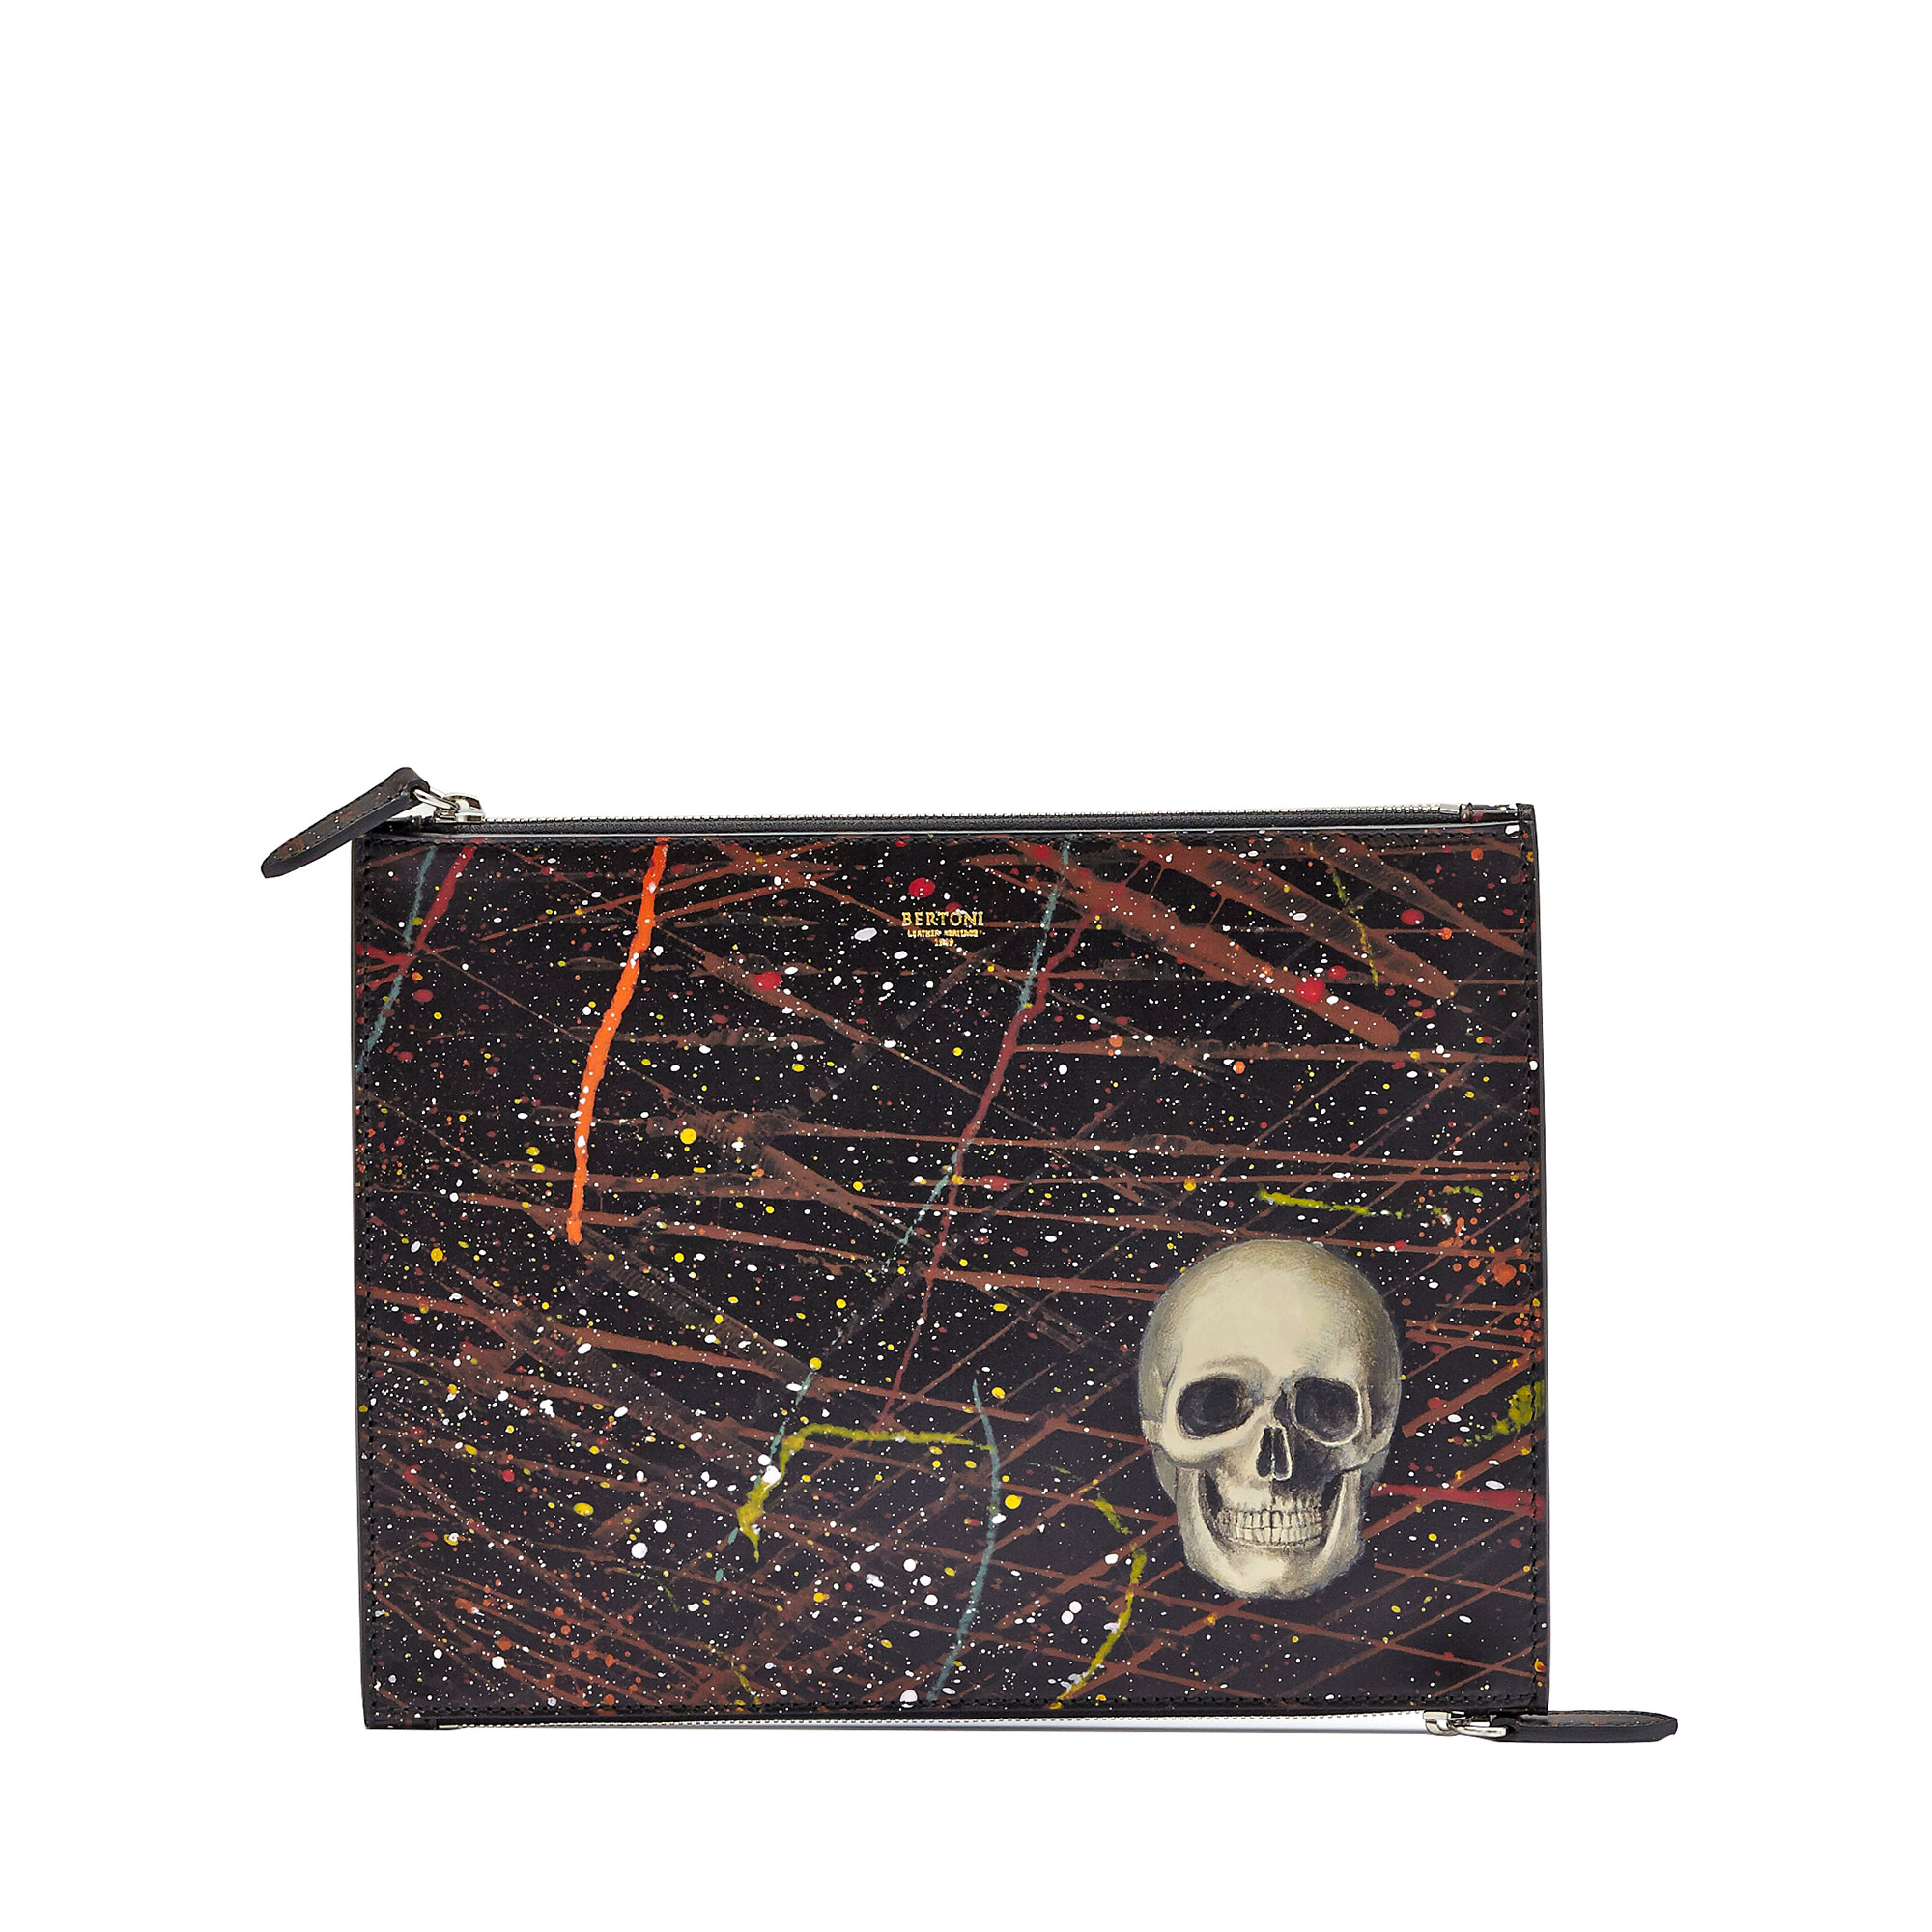 The black with skull french calf Zip Pouch by Bertoni 1949 01